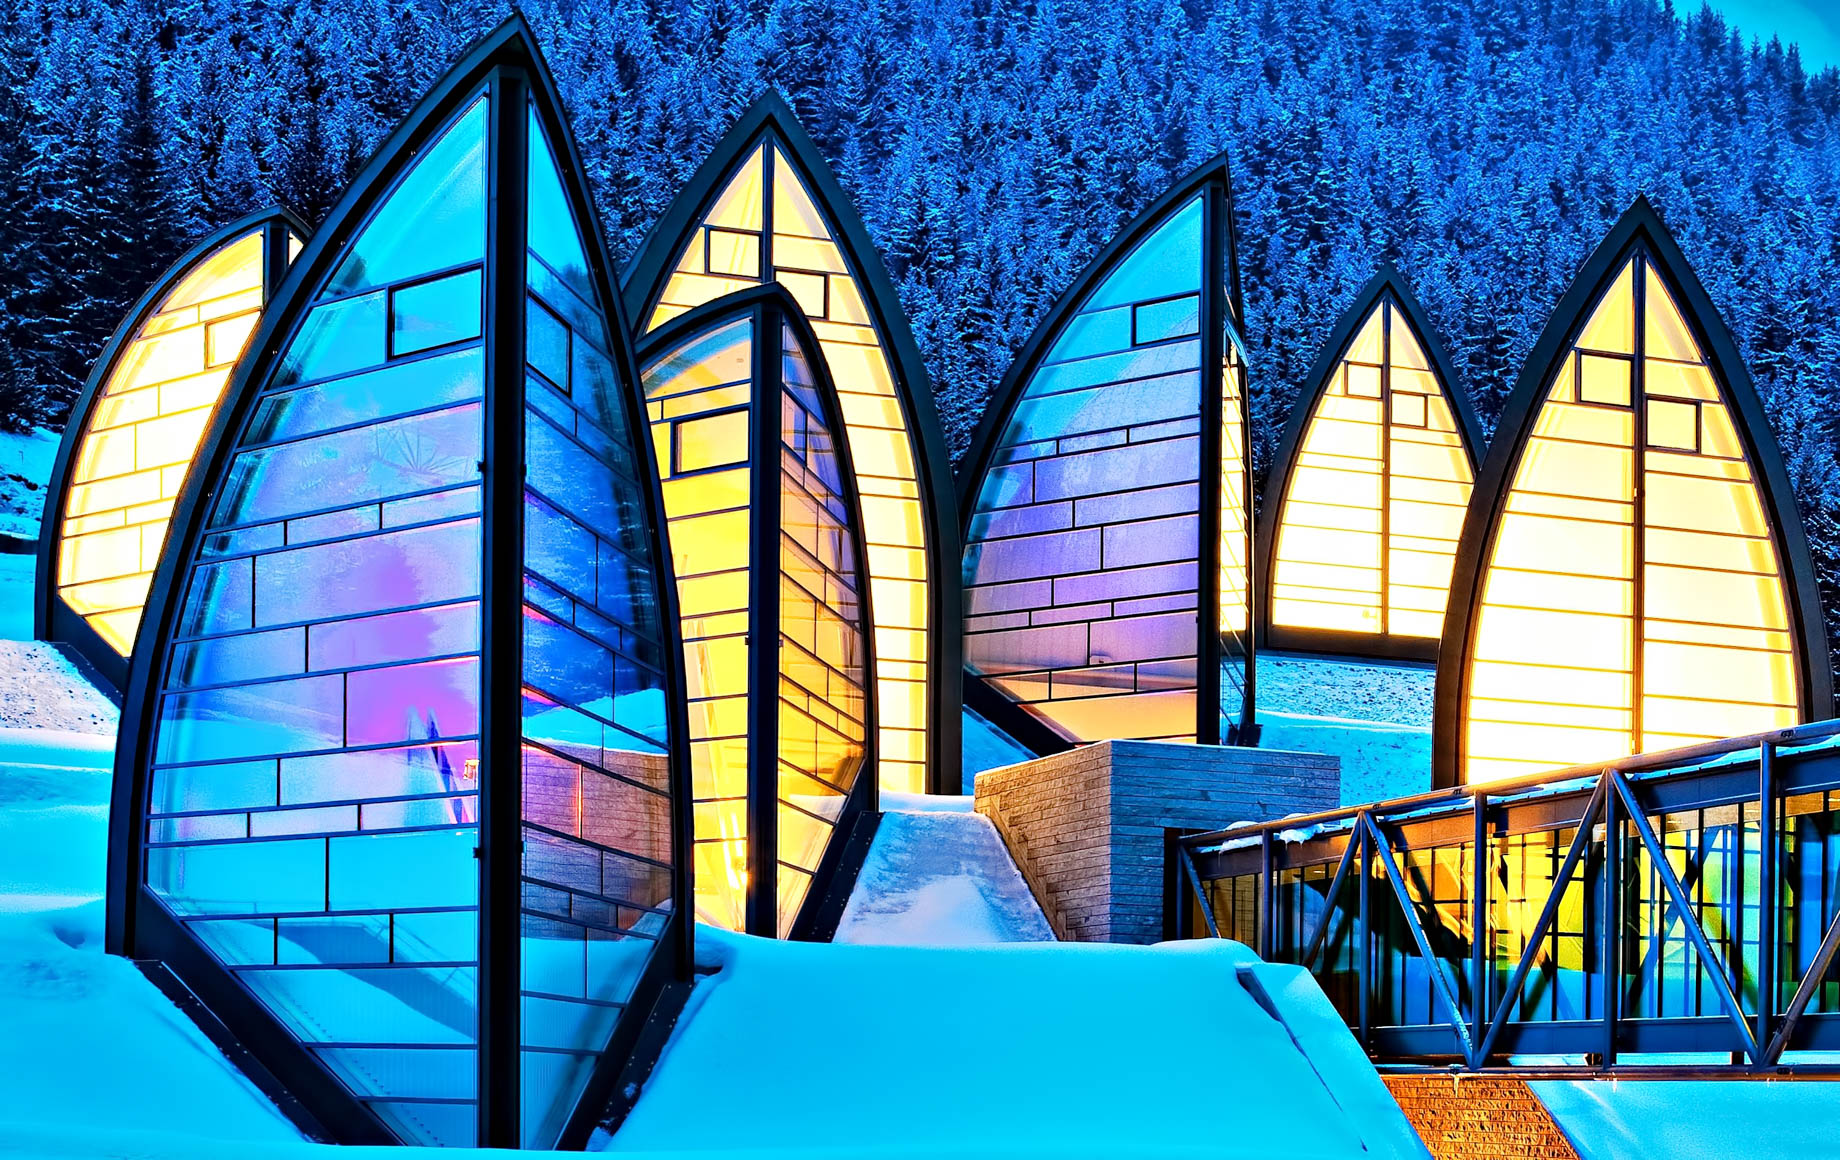 Tschuggen Grand Luxury Hotel - Arosa, Switzerland